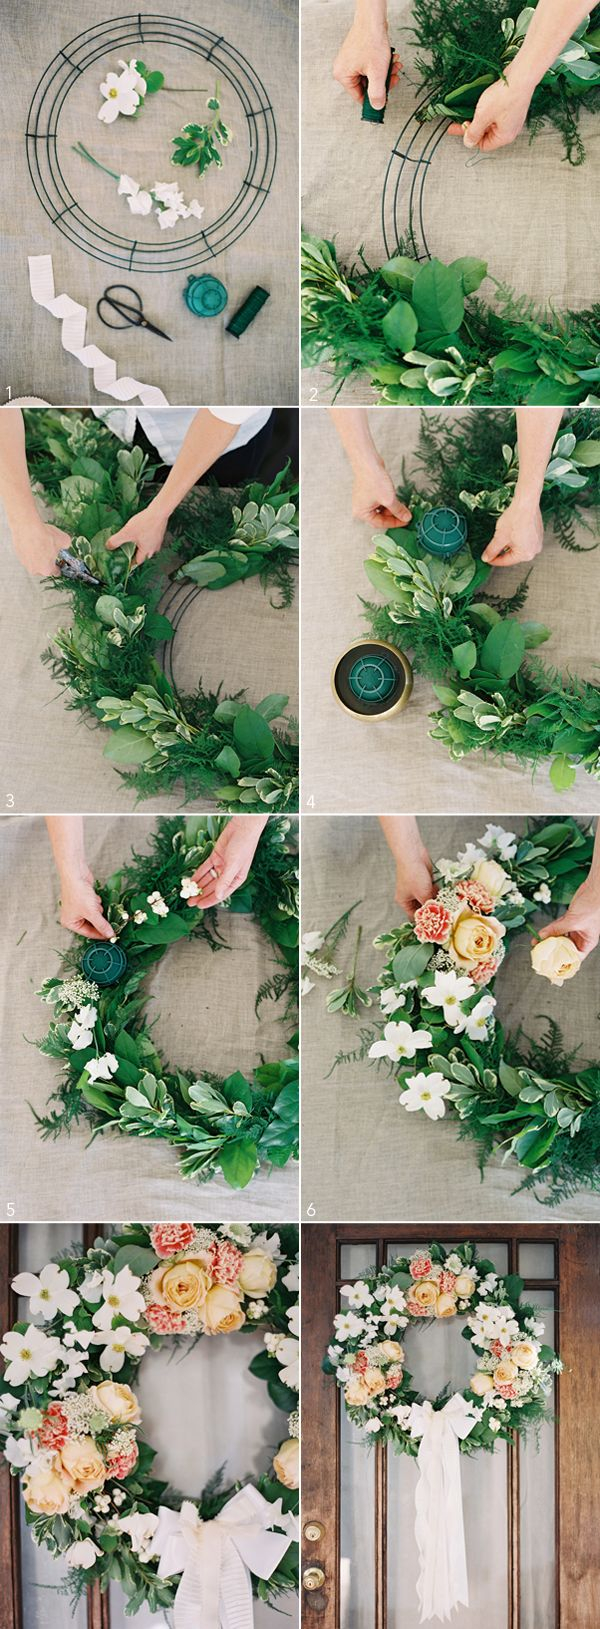 Wedding Decoration Ideas Diy 20 Creative Diy Wedding Ideas For 2016 Spring